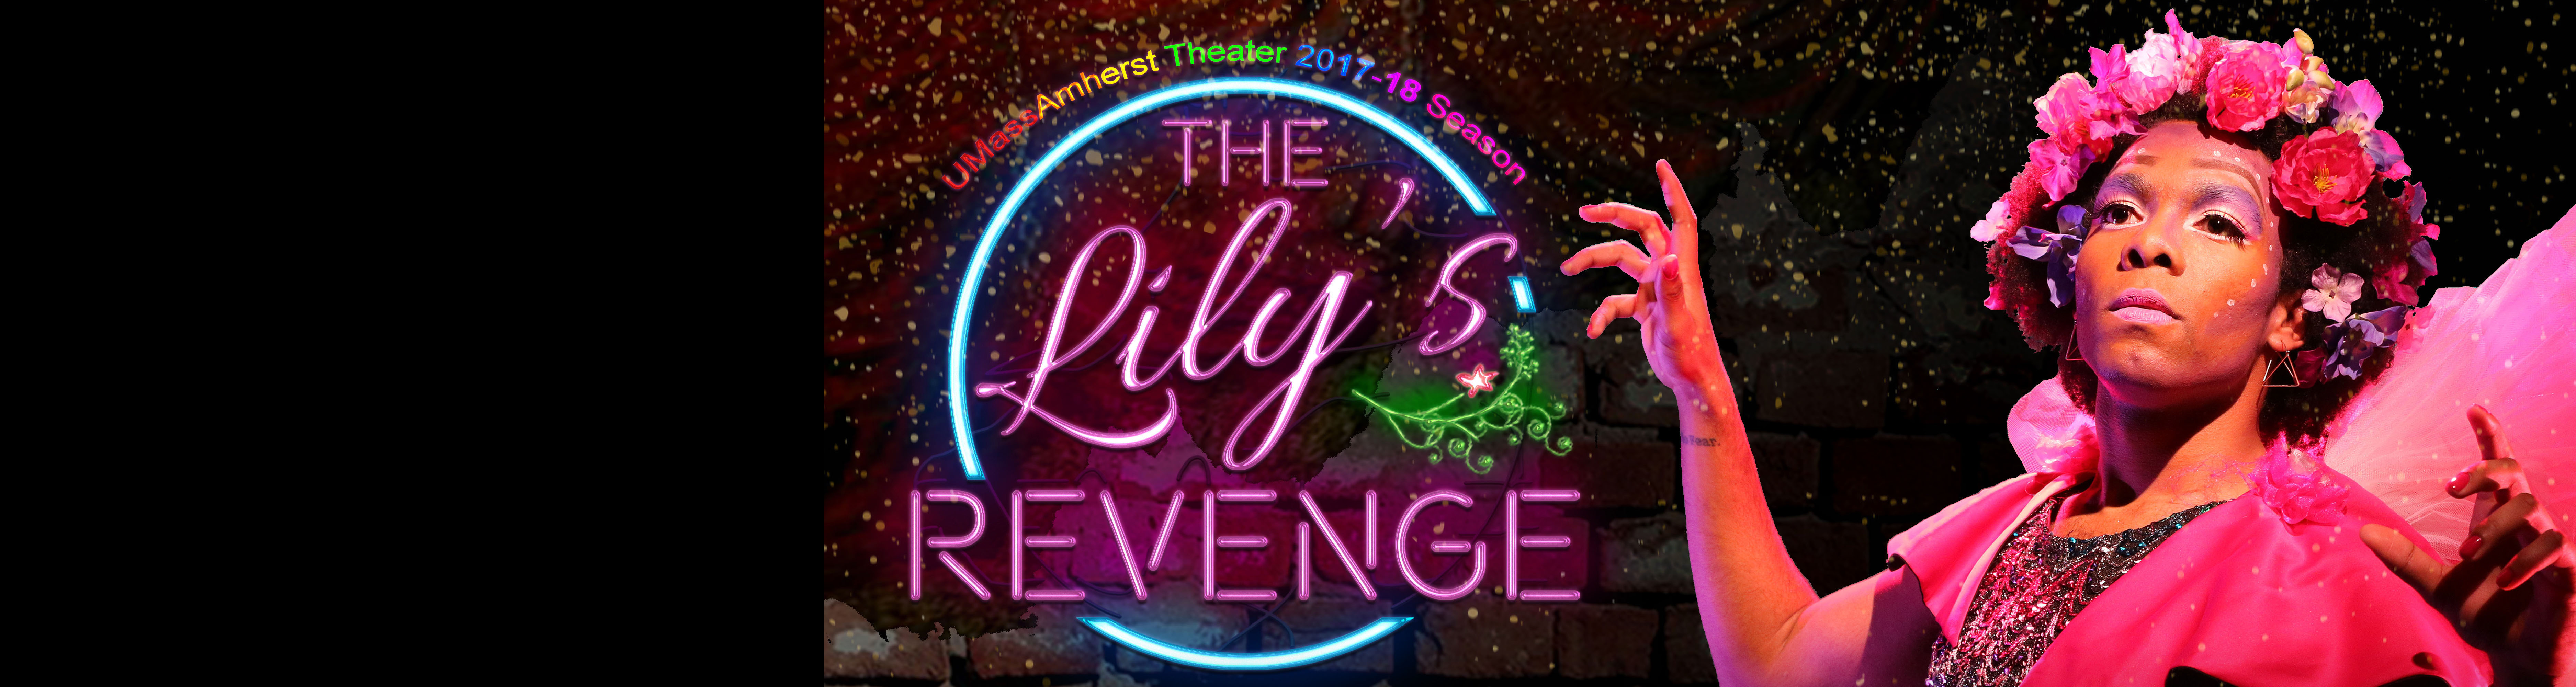 Web banner for The Lily's Revenge, featuring a neon light sign saying The Lily's Revenge, with a performer dressed as a flower next to it